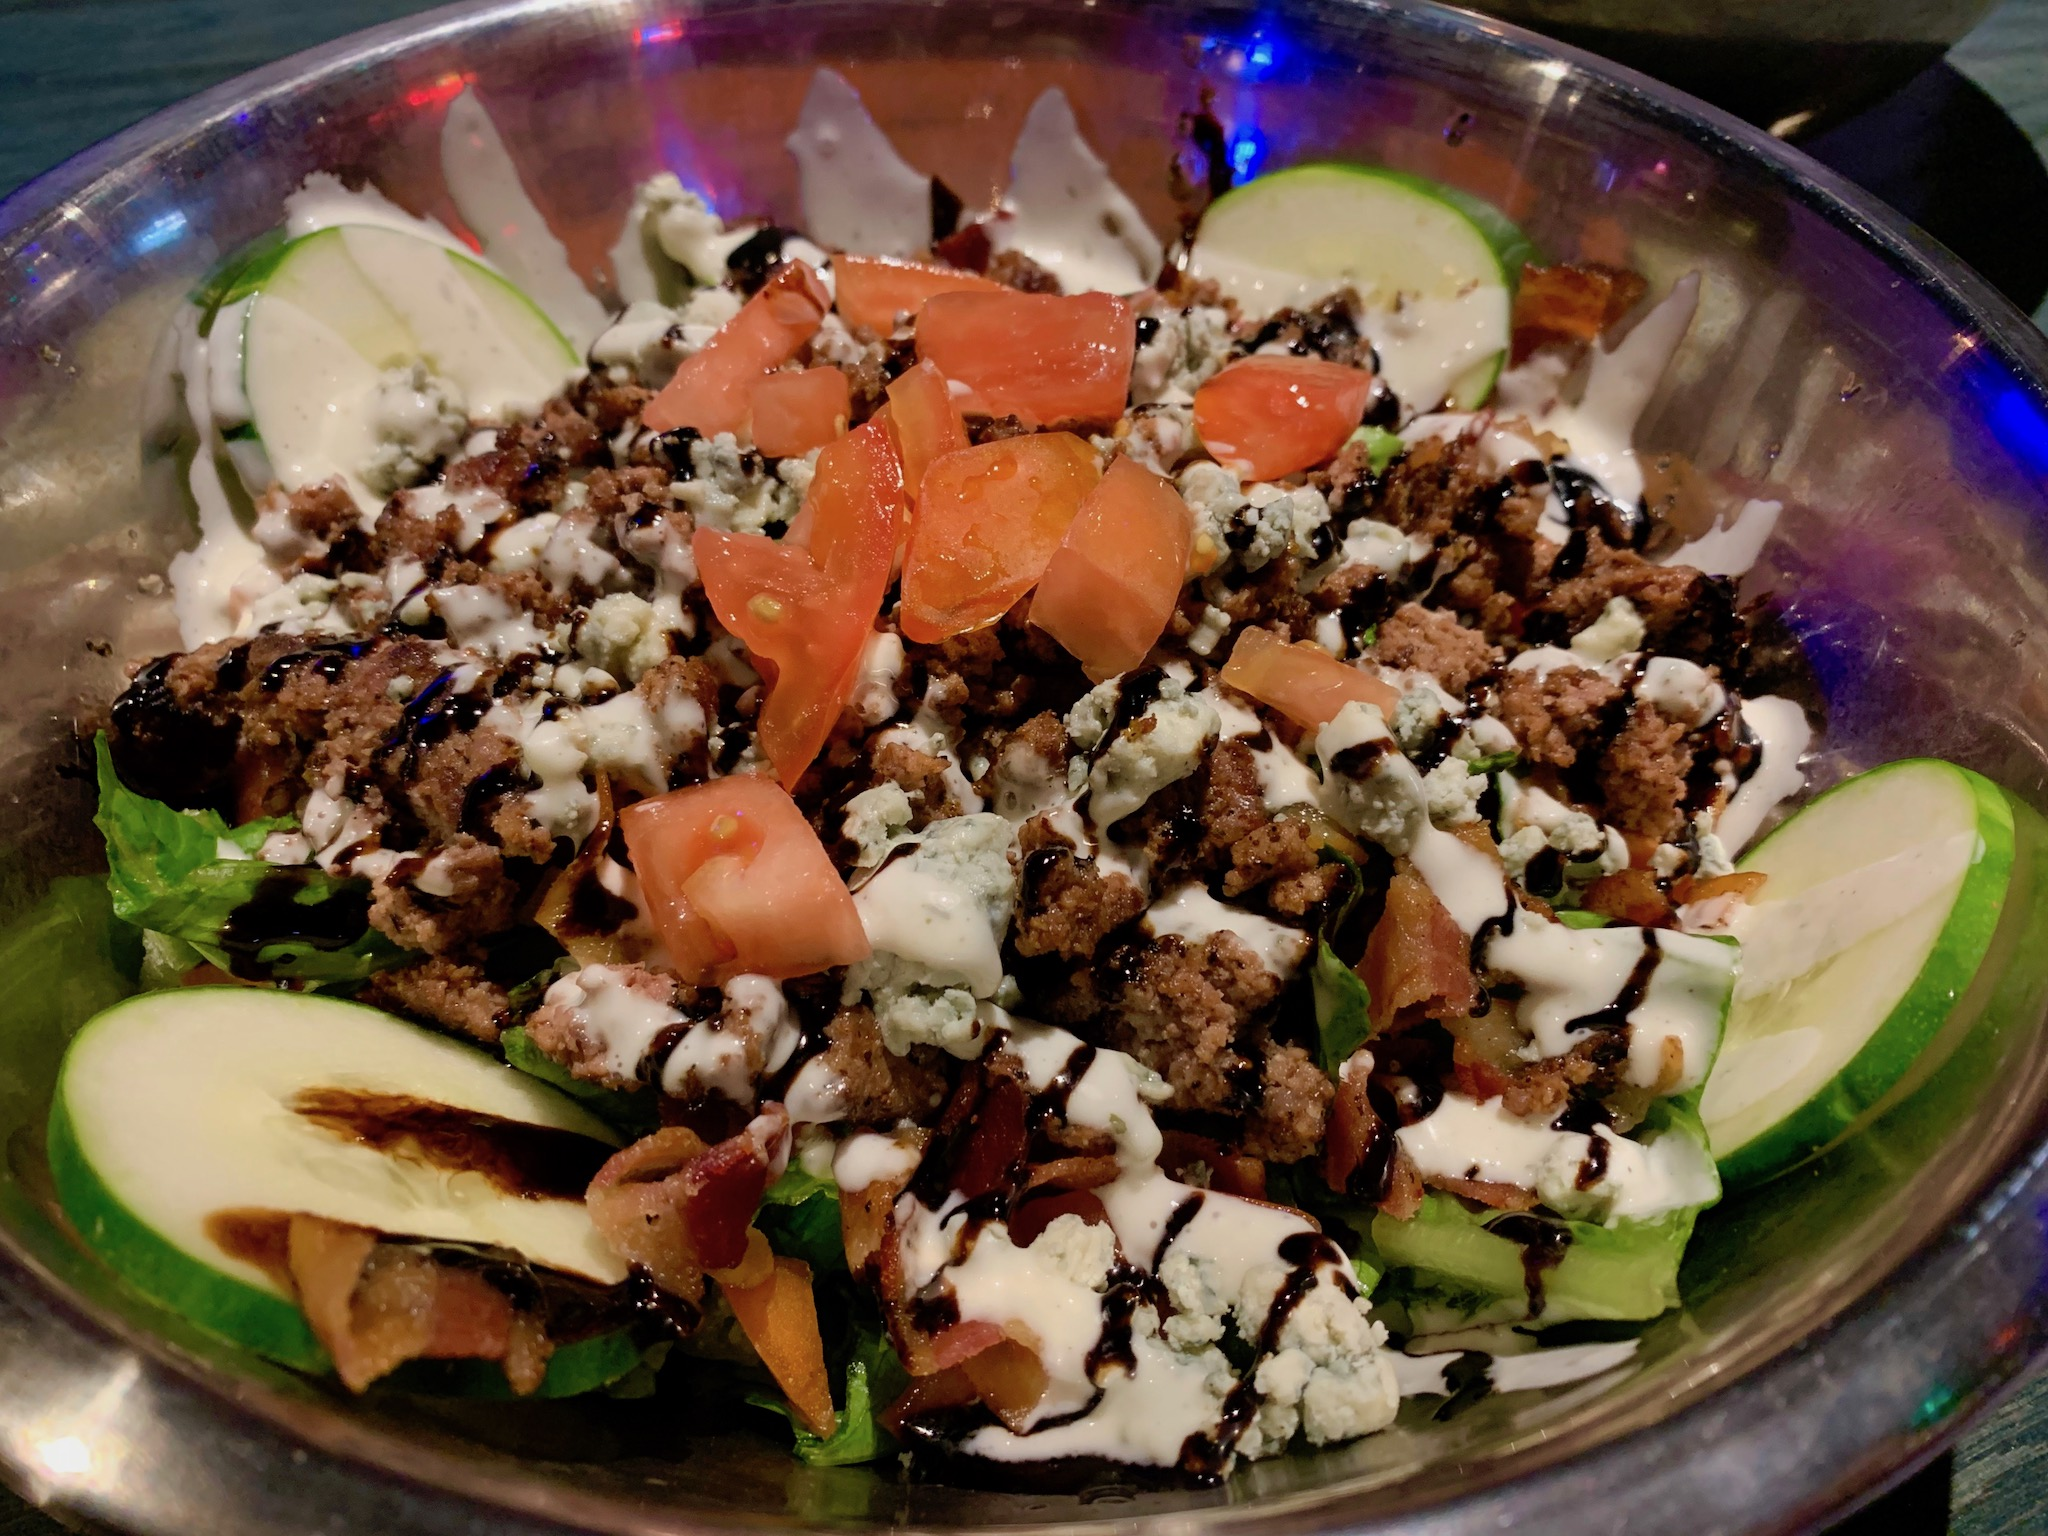 Salty J's - Tossed BIG BLEU Salad